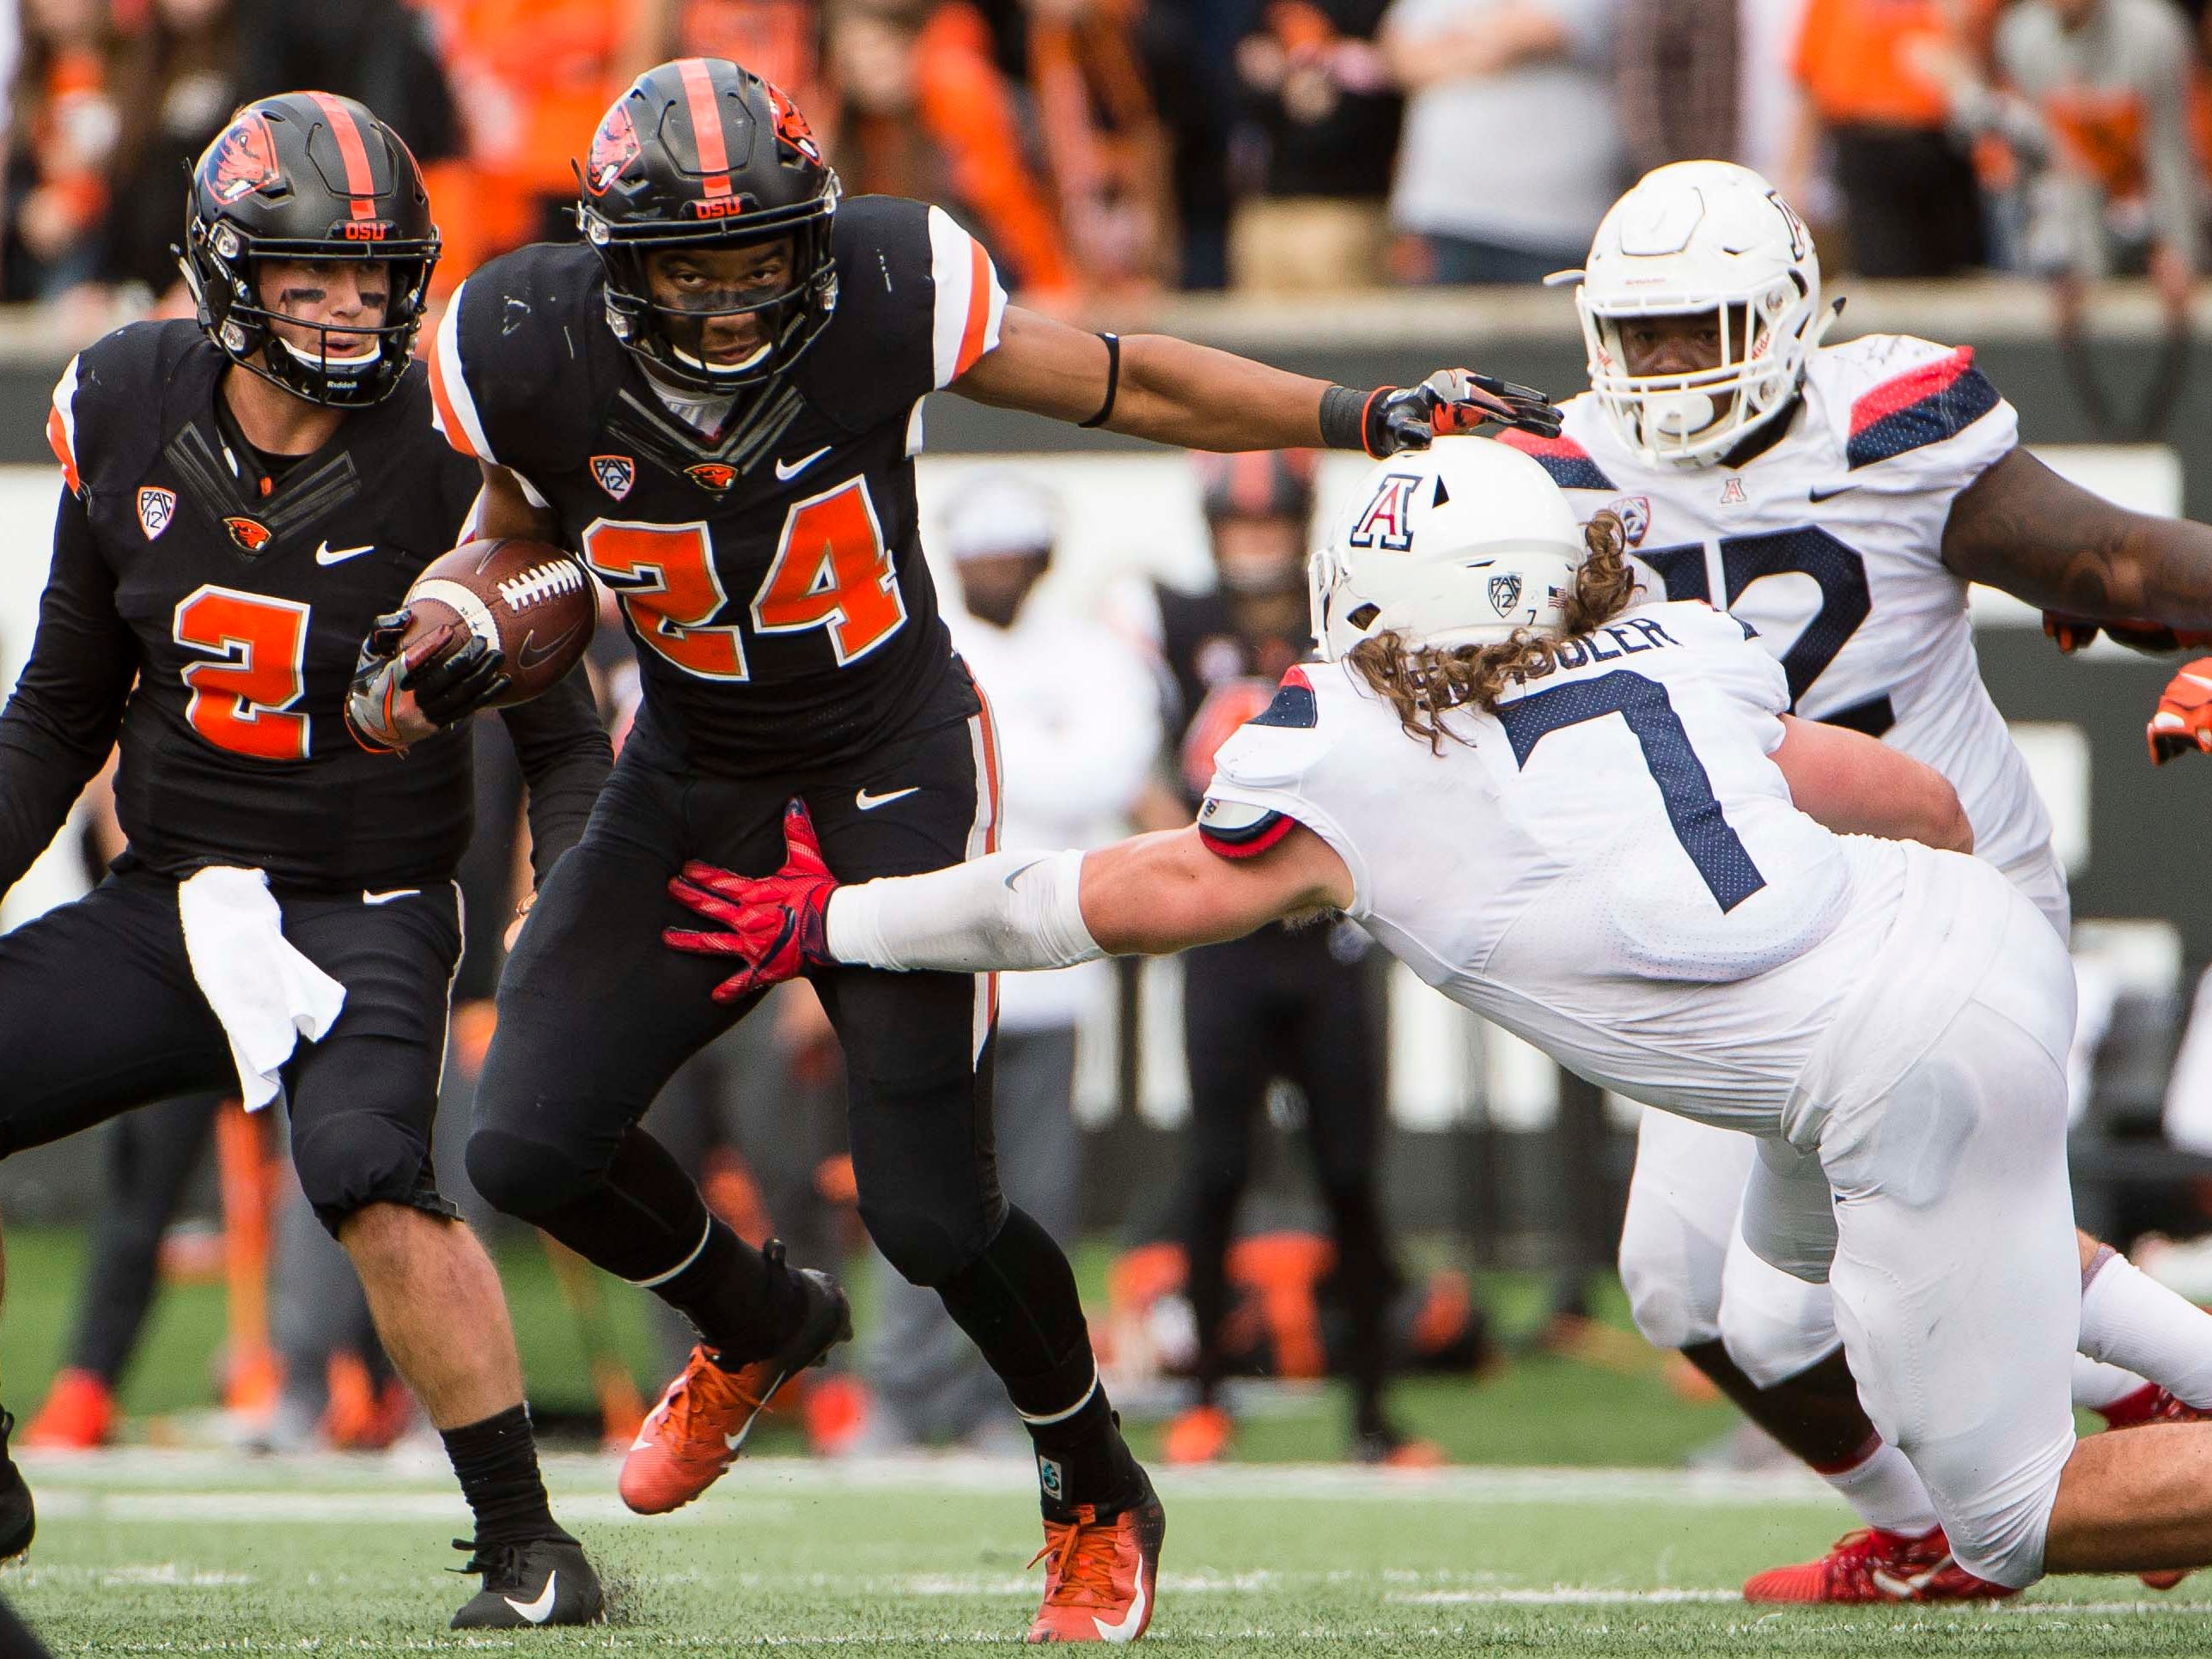 Sep 22, 2018; Corvallis, OR, USA; Oregon State Beavers running back Kase Rogers (24) breaks away from Arizona Wildcats linebacker Colin Schooler (7) during the second half at Reser Stadium. The Arizona Wildcats won 35-14.